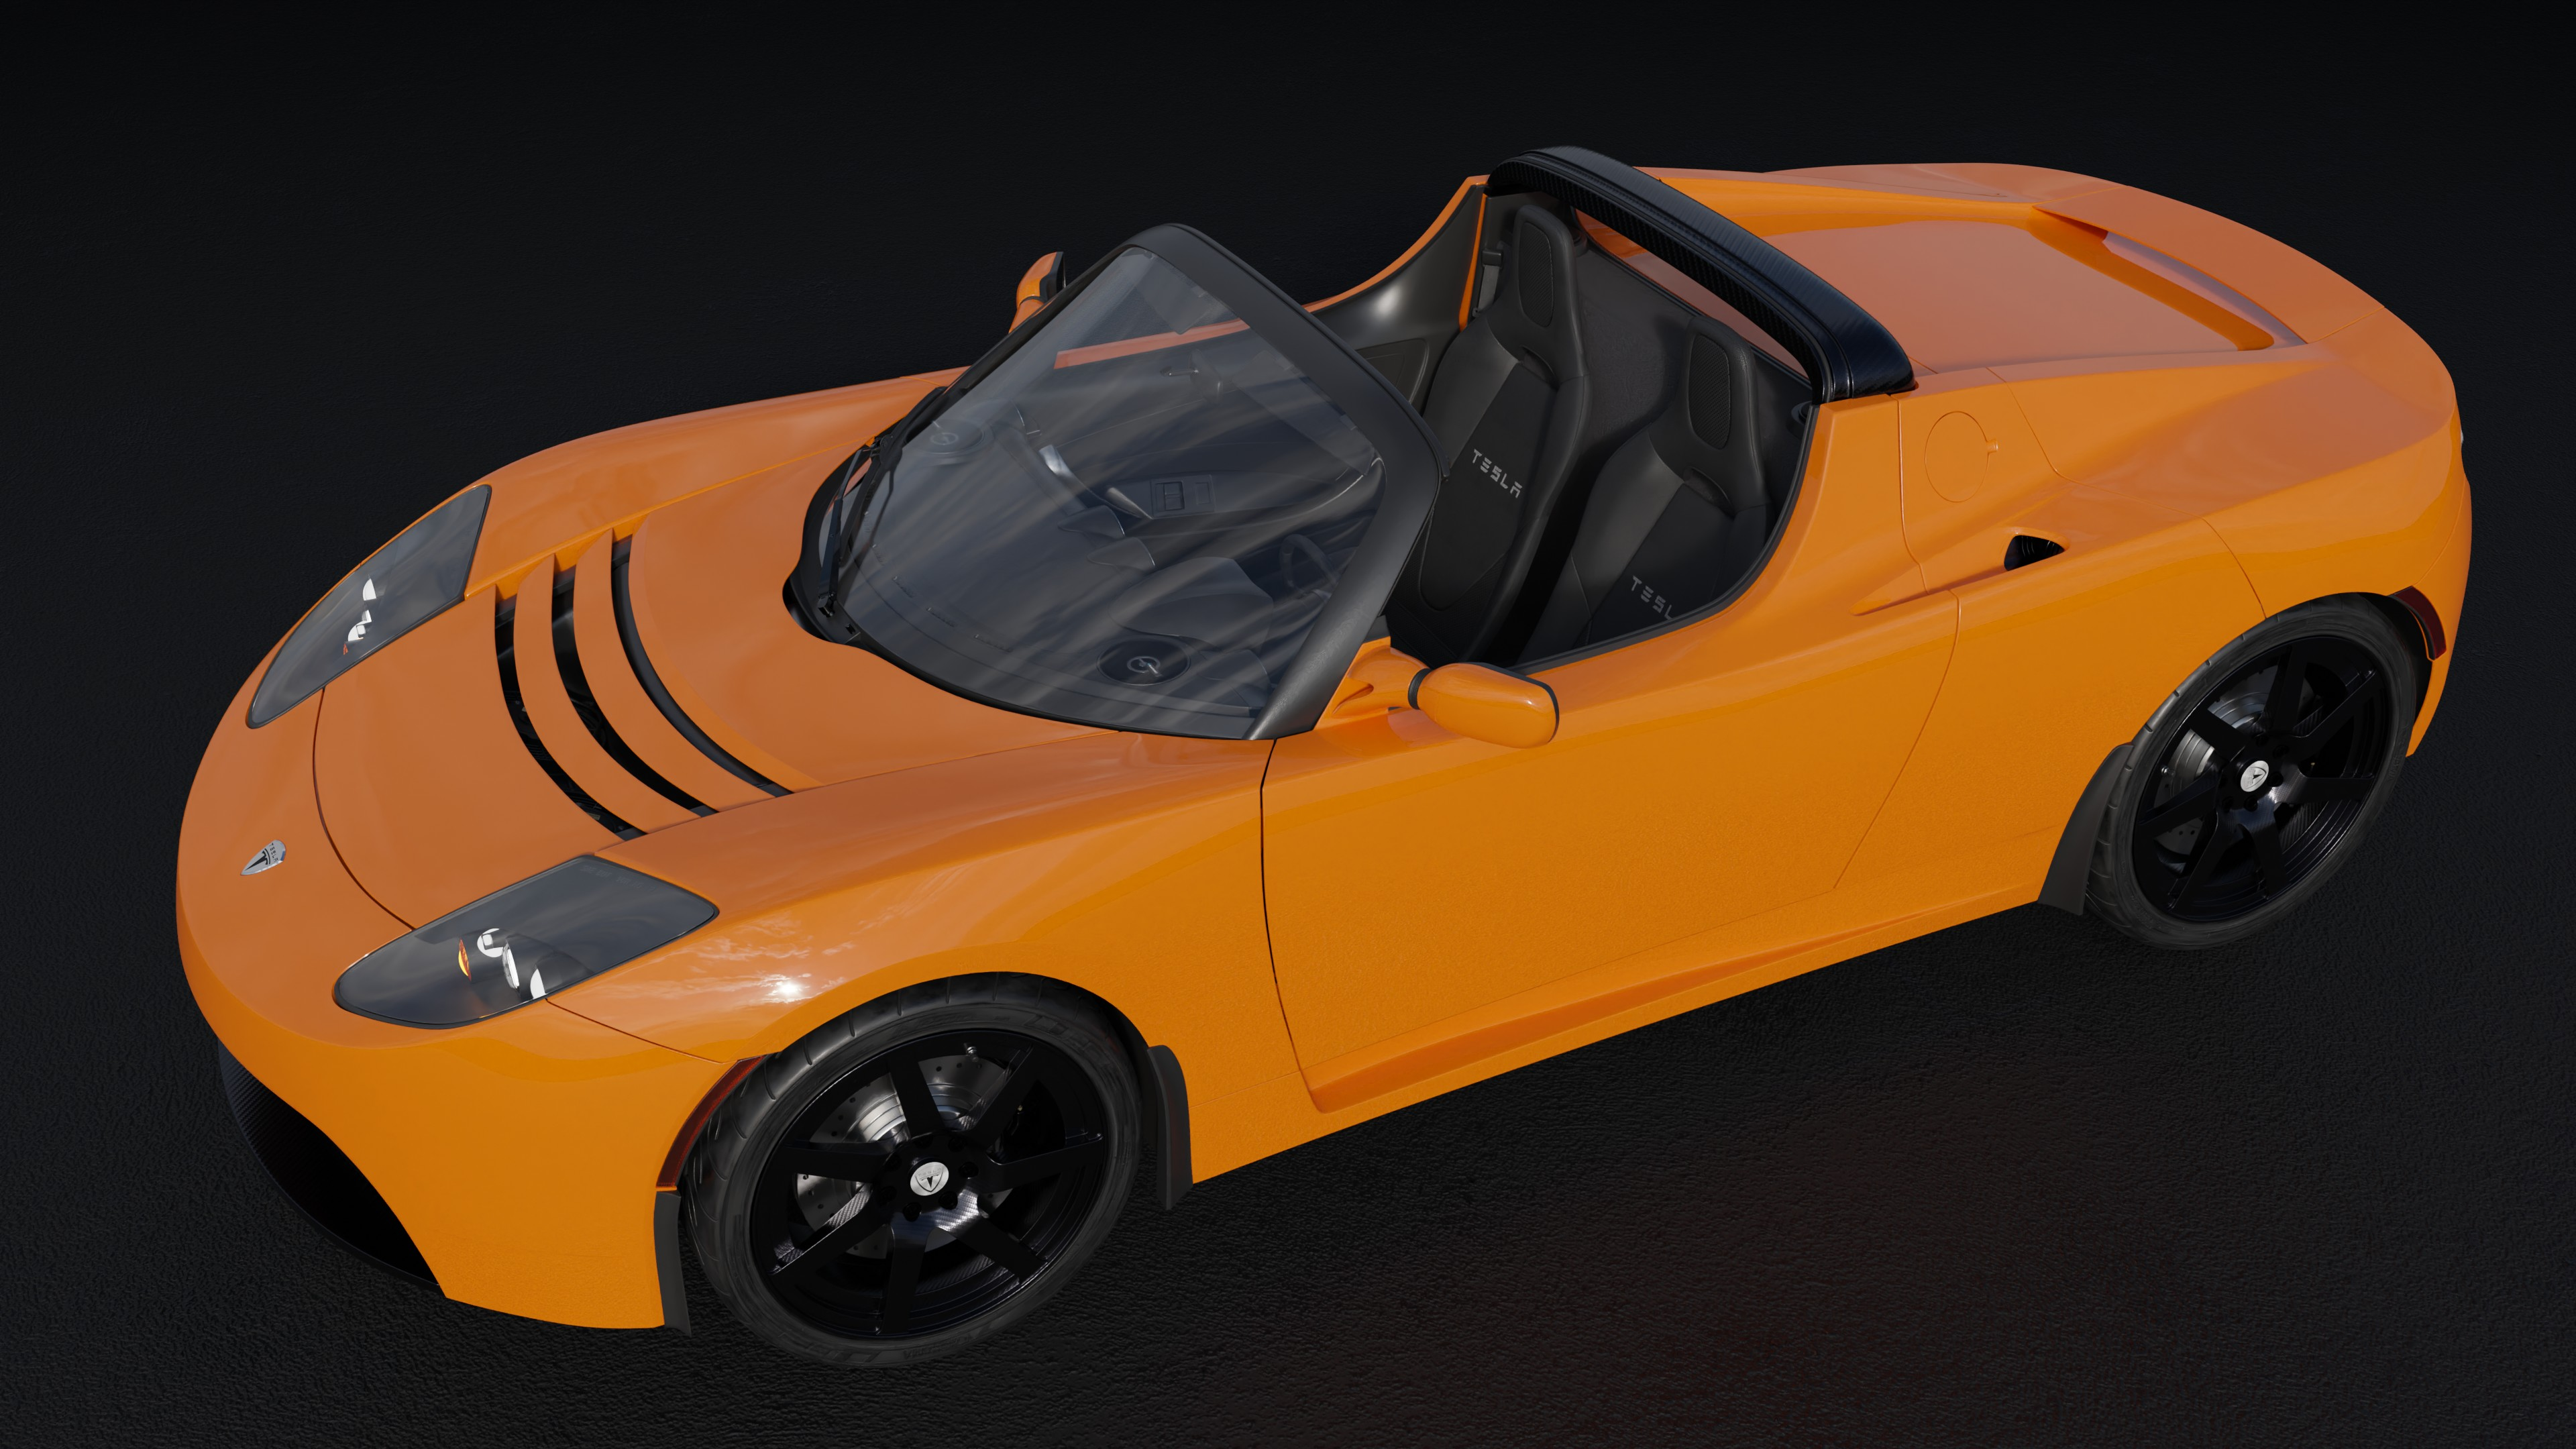 2010 Tesla Roadster preview image 1